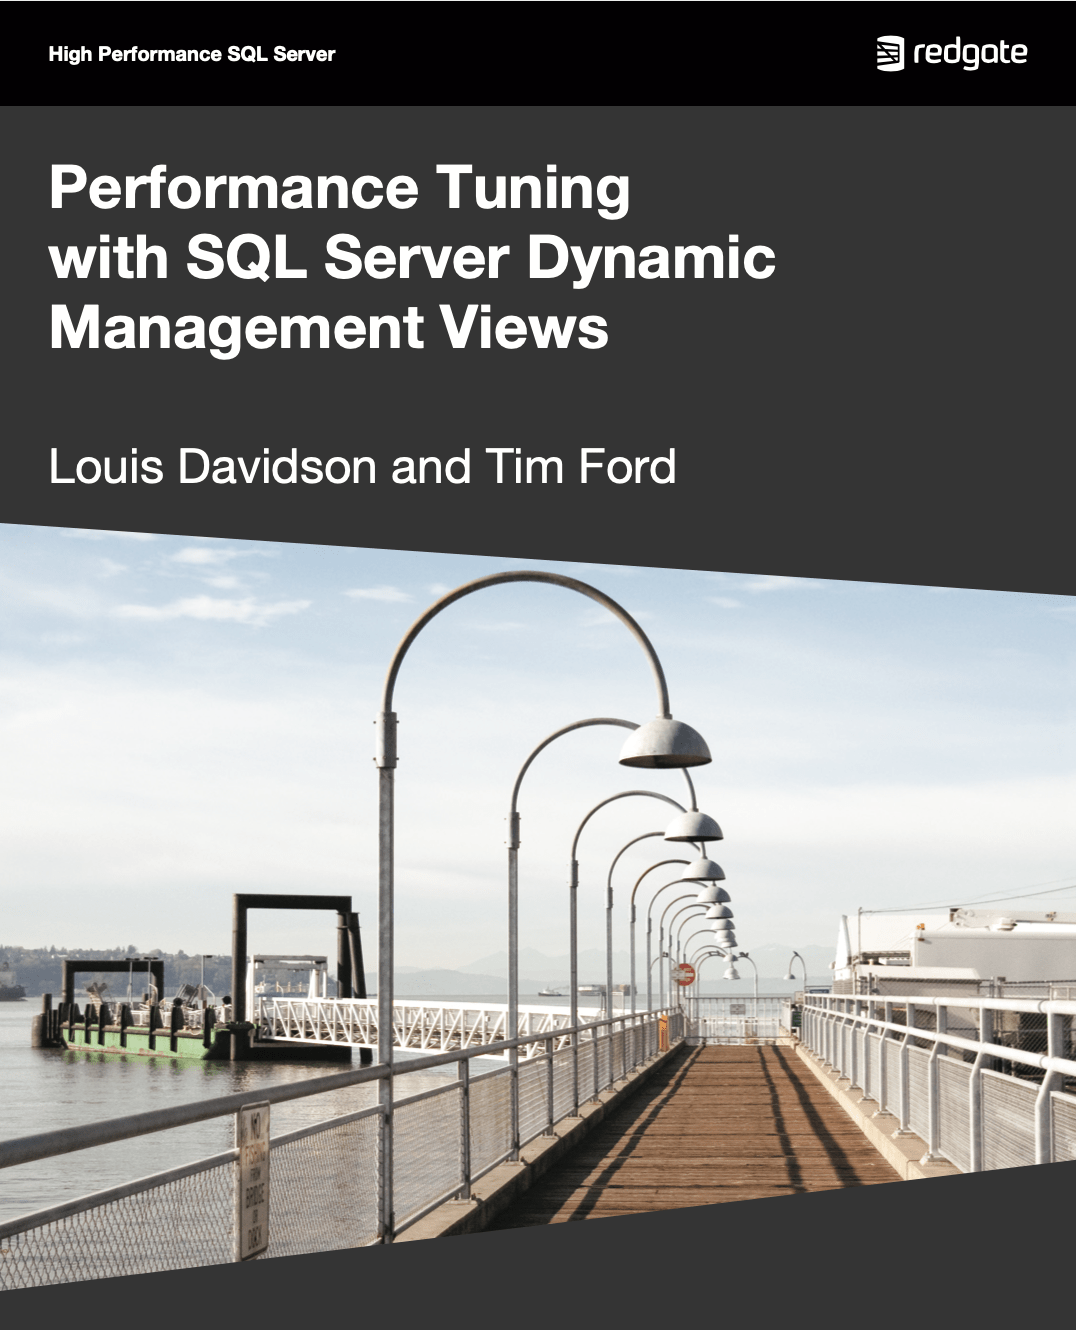 Performance Tuning with SQL Server Dynamic Managment Views eBook cover